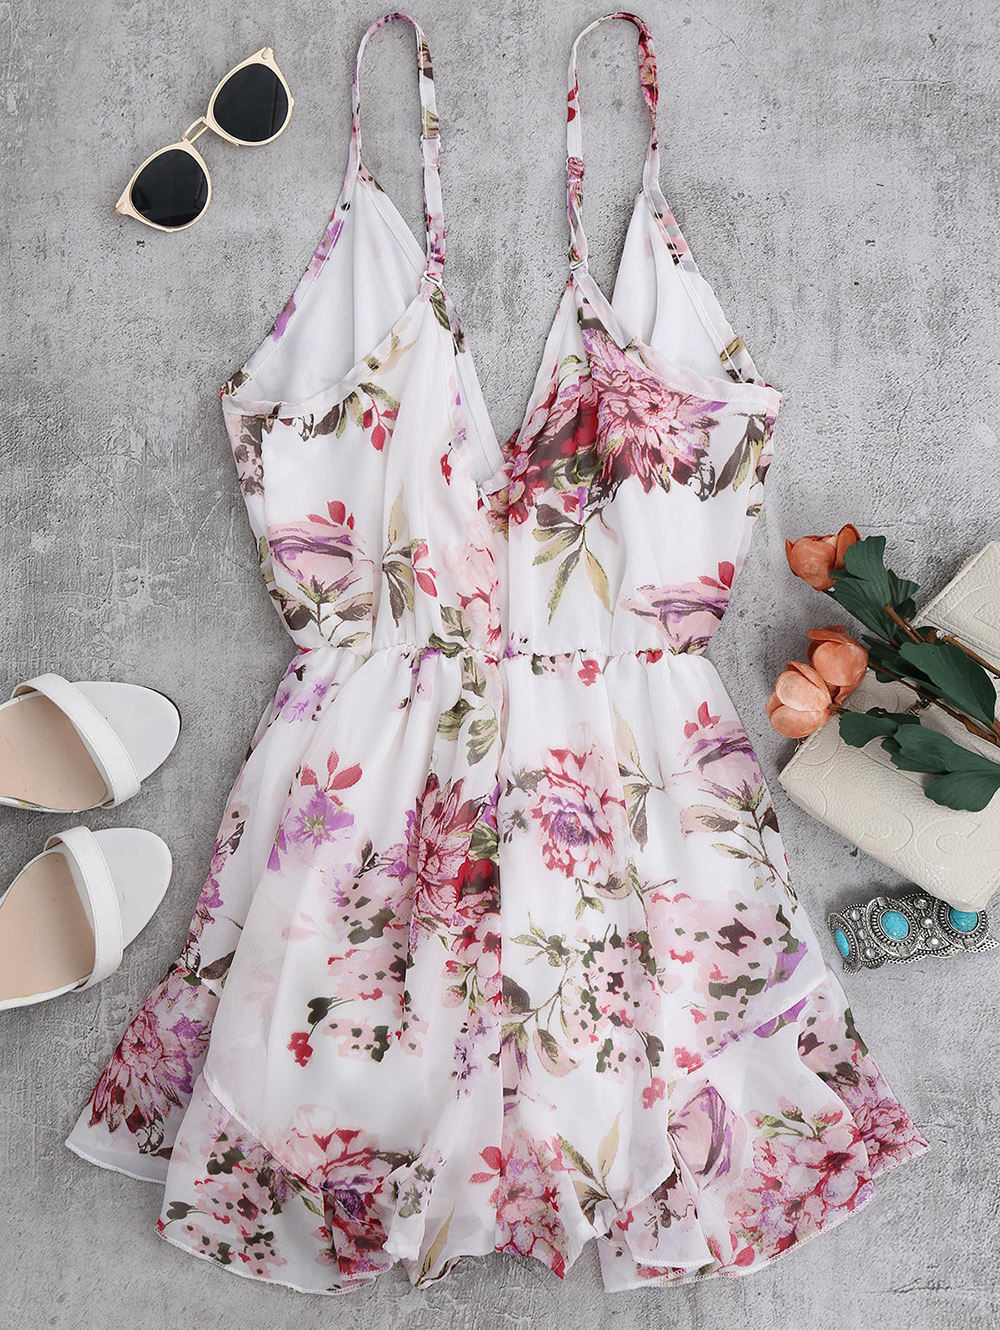 AZULINA 2018 Summer Holiday Floral Print Women Romper Jumpsuit Sexy Flower Chiffon Cami Strap Beach Romper Playsuit Overalls 9